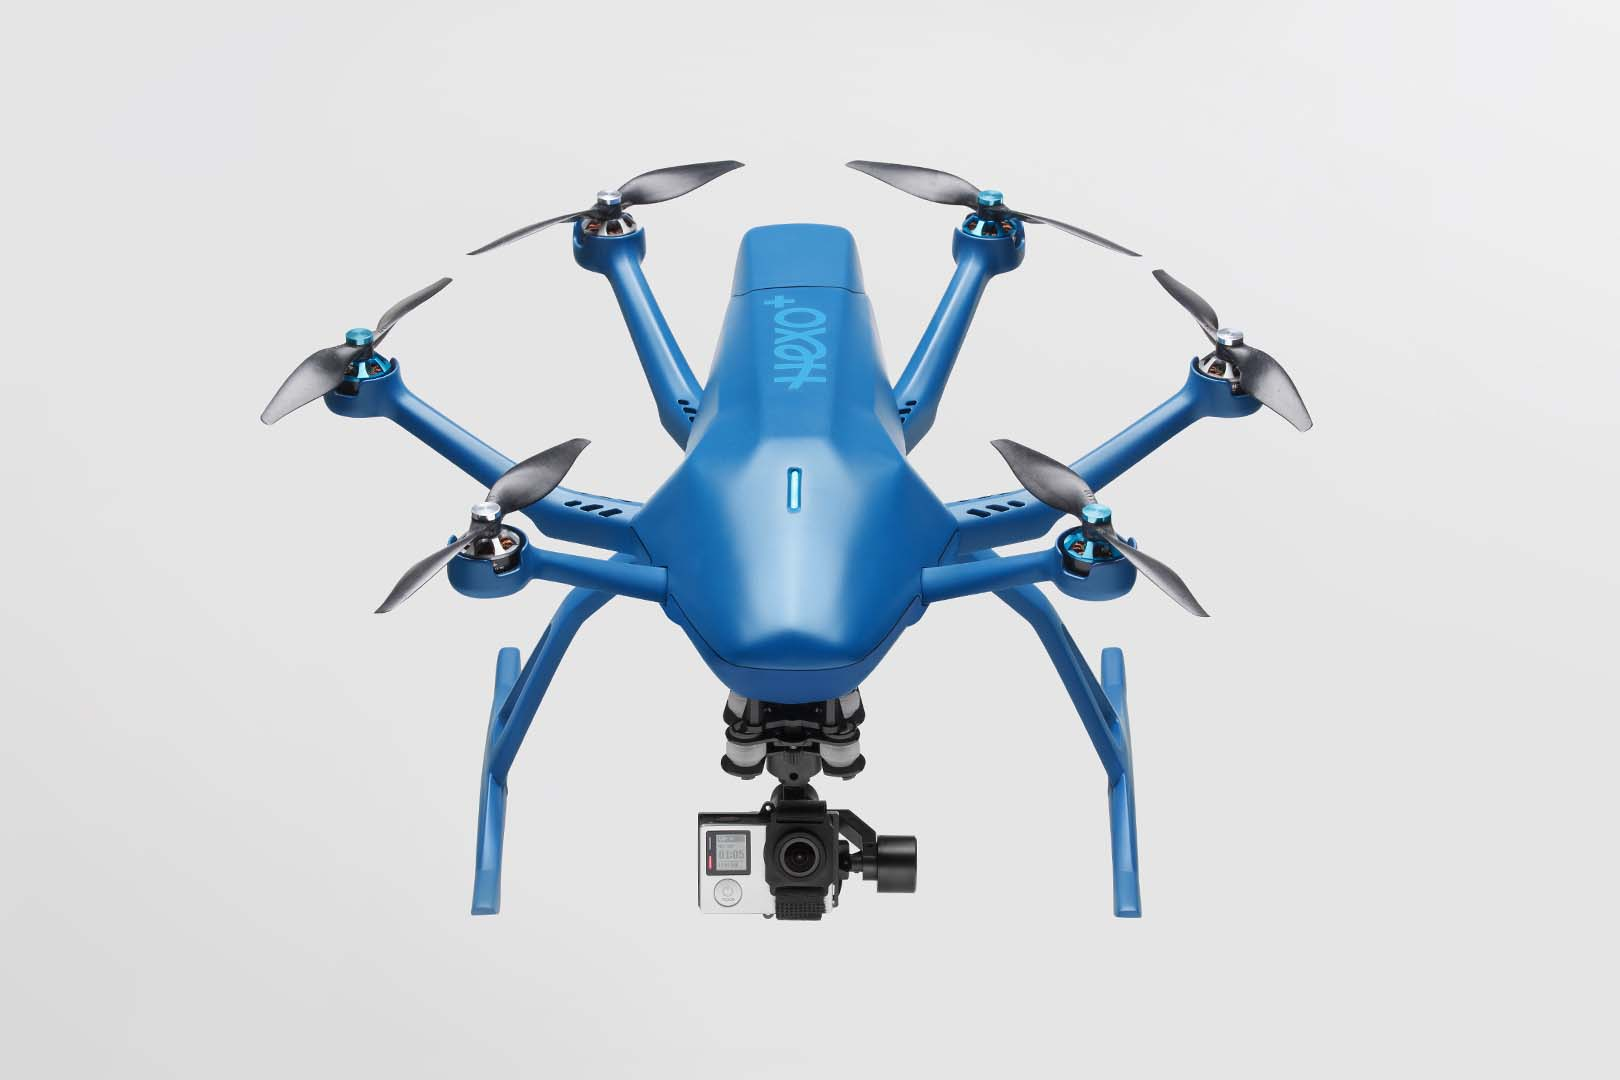 The Hexo+ Drone